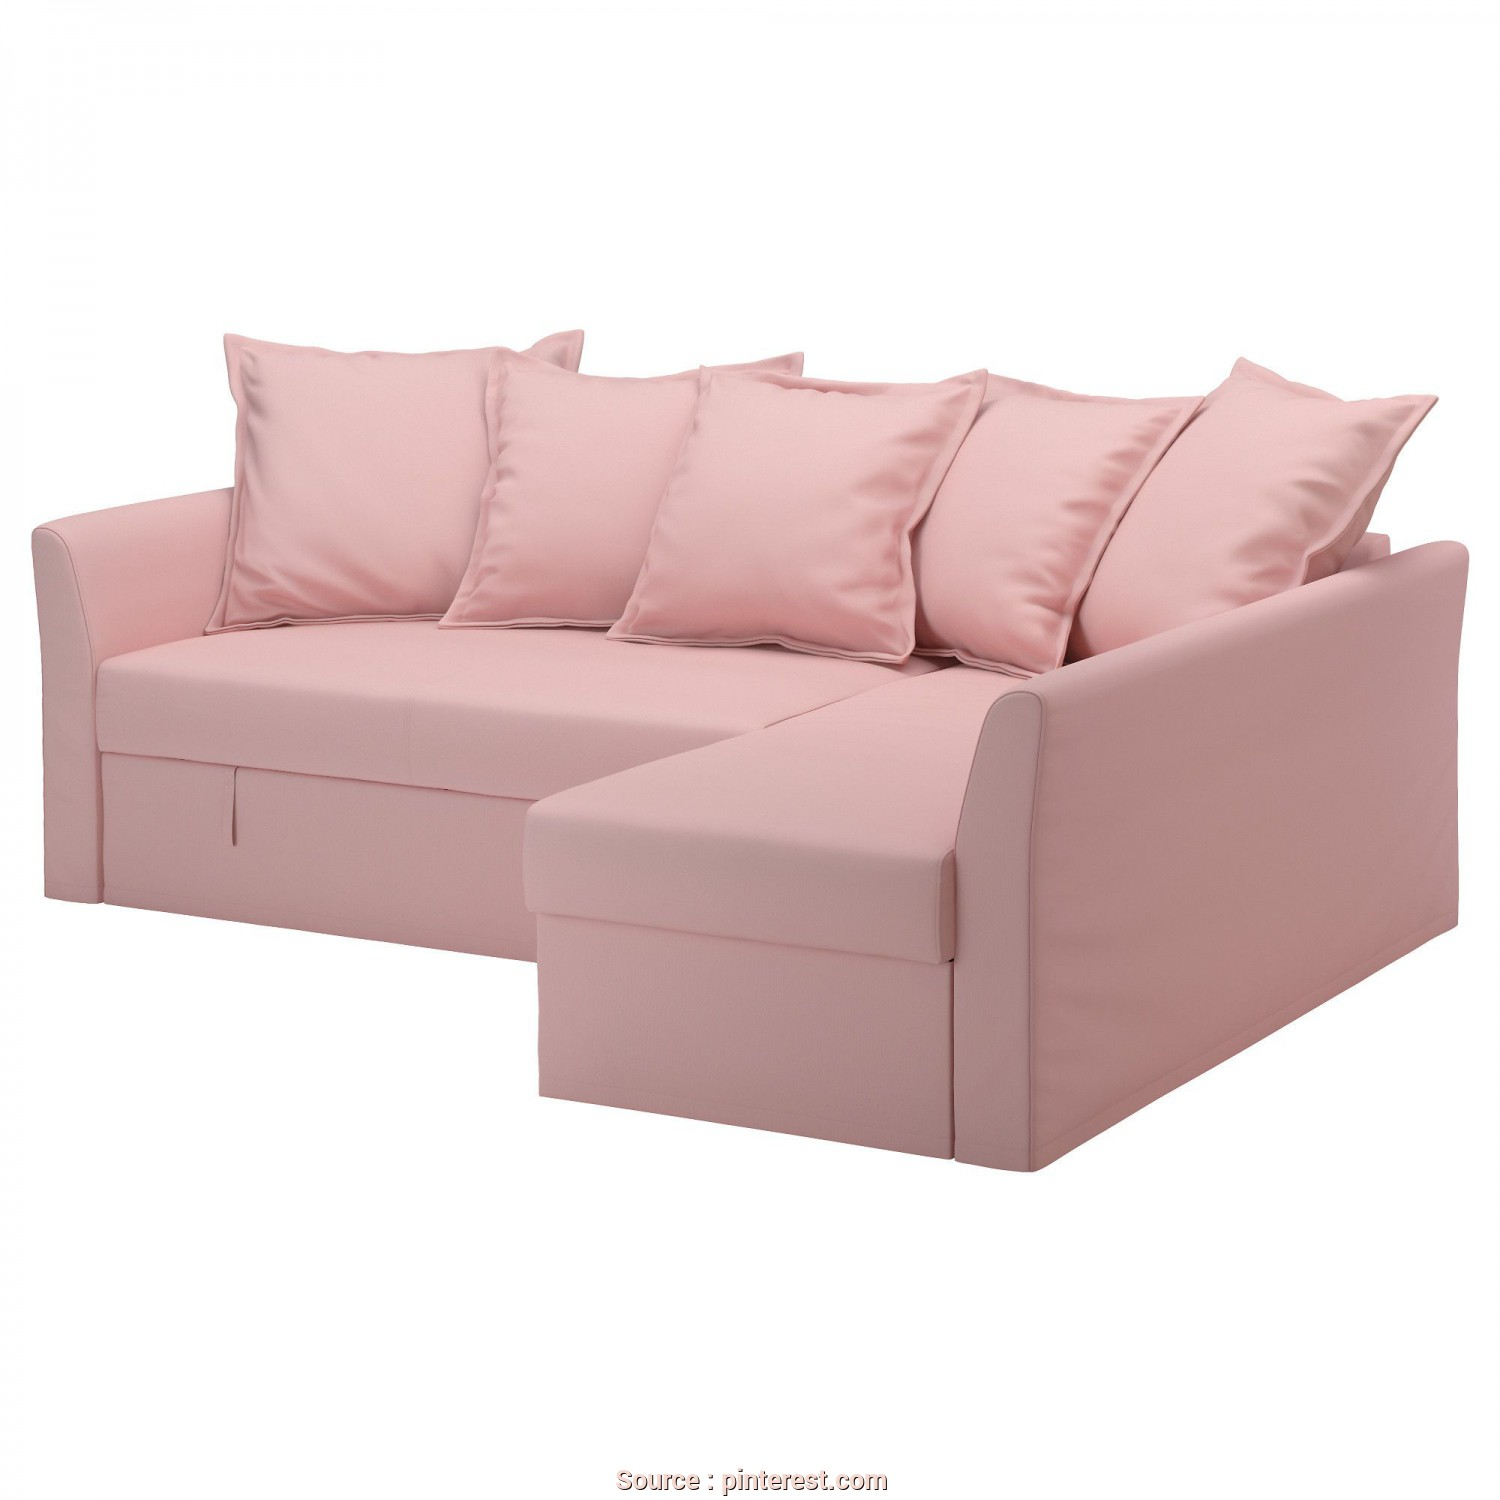 Vilasund Ikea Test, Minimalista IKEA, HOLMSUND, Sofa, With Chaise, Ransta Light Pink, , Cover Made Of Durable Cotton With A Fine, Smooth Texture.Storage Space Under, Chaise